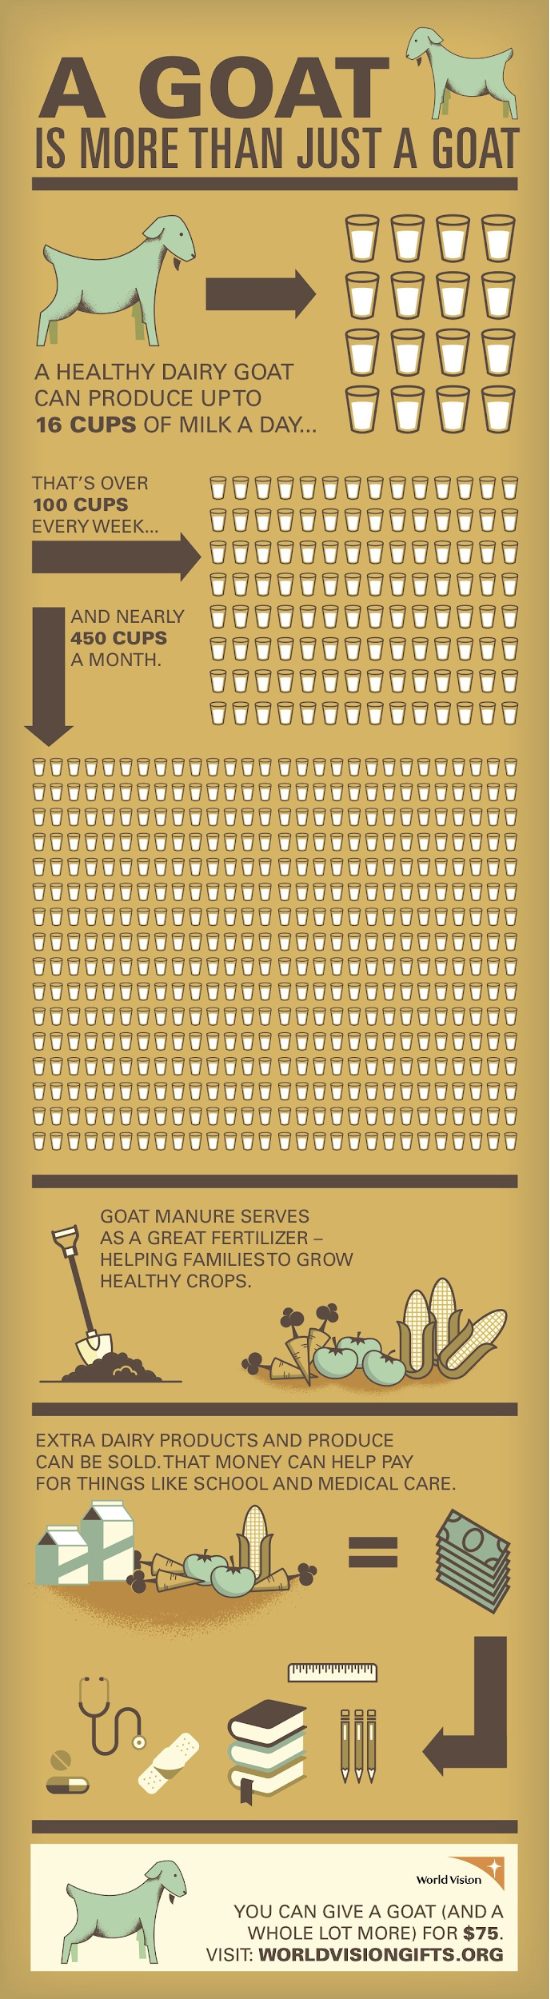 World Vision Goat Nonprofit Infographic